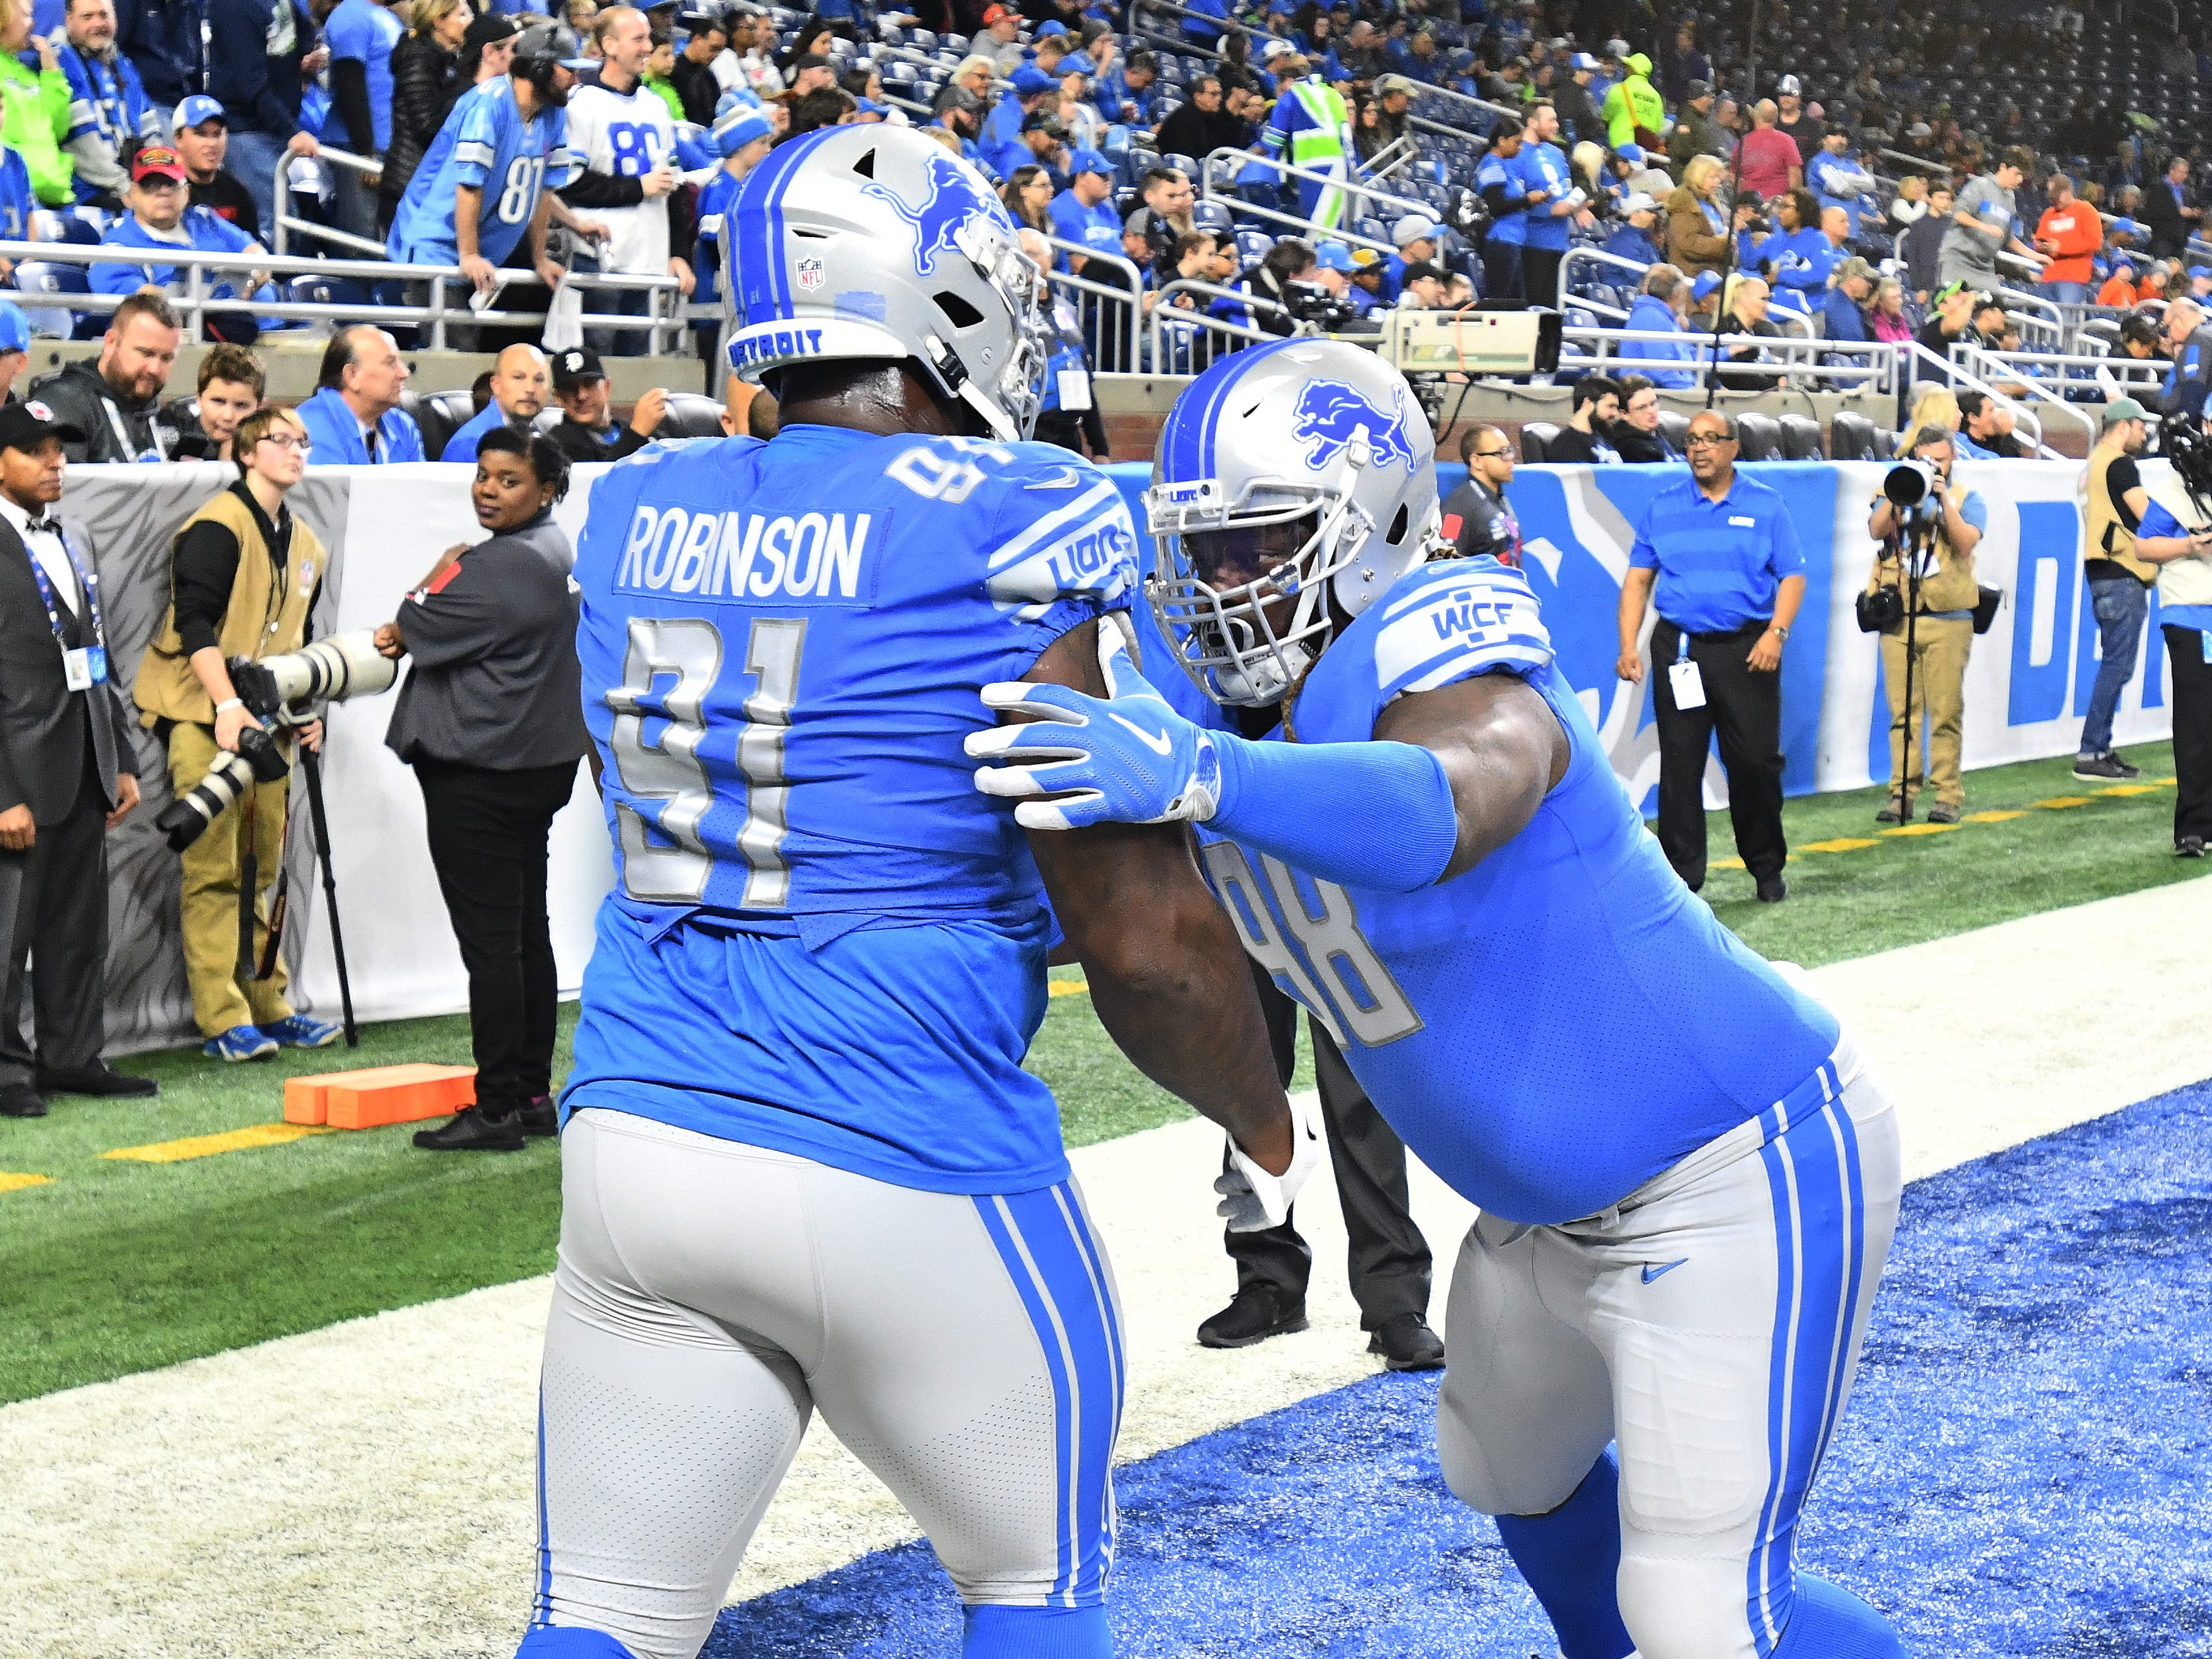 Lions new defensive lineman Damon Harrison Sr. warms up before the game.